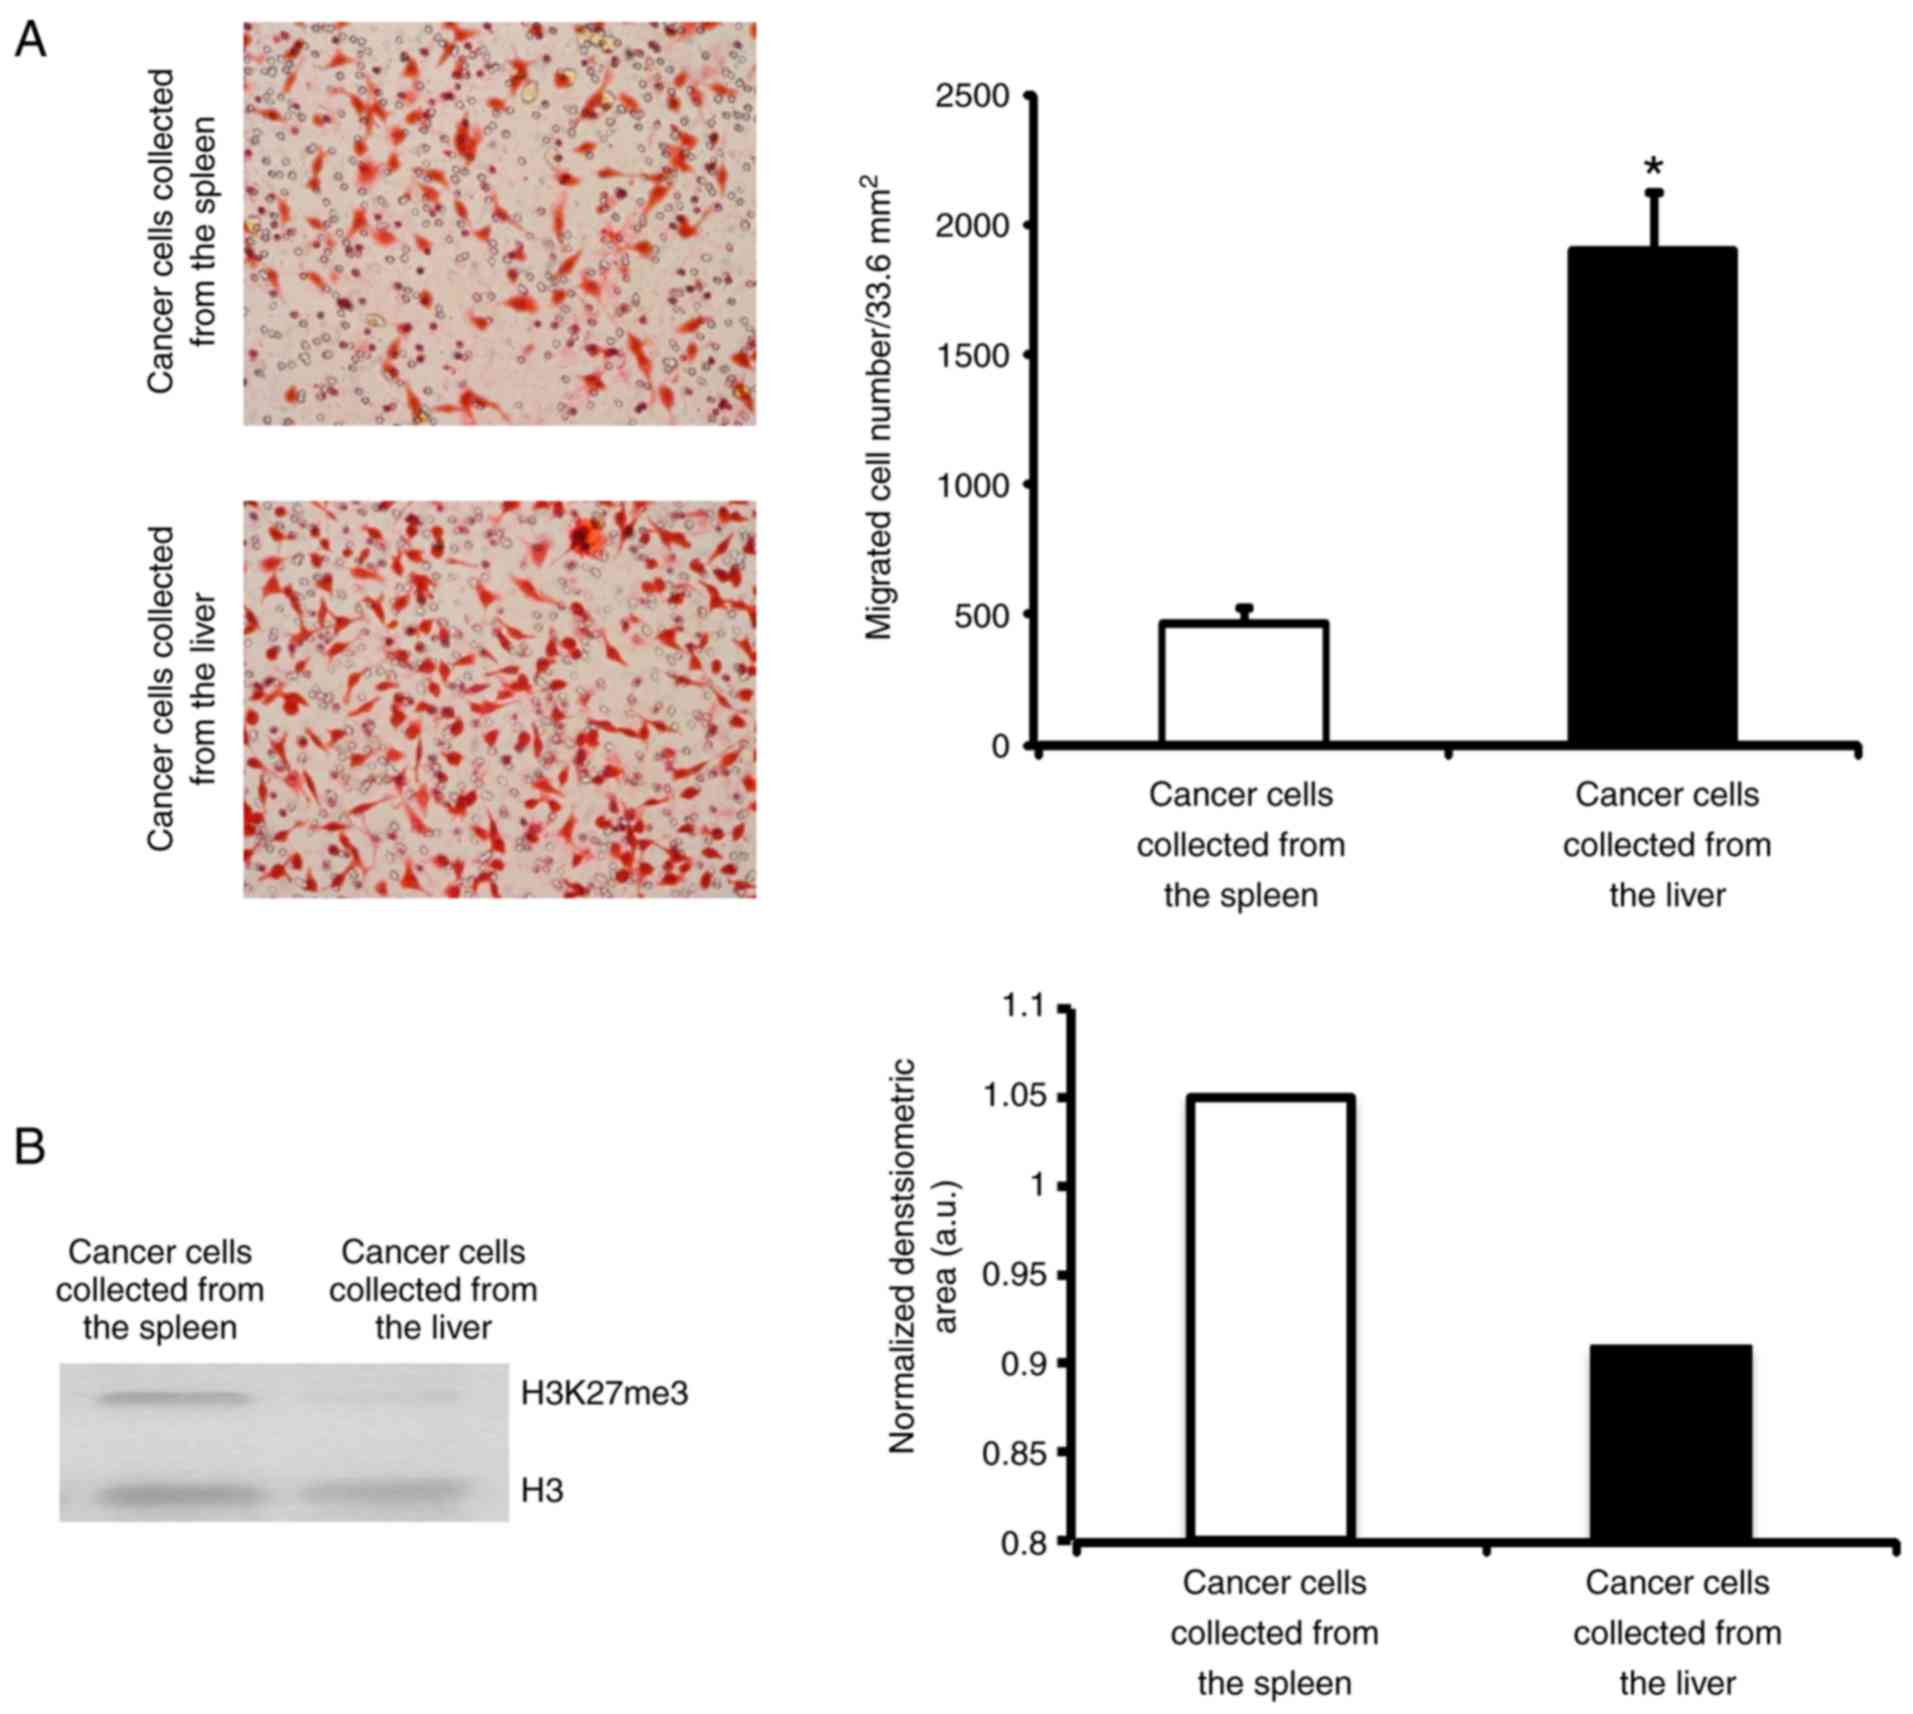 Nadh Dehydrogenase Complex I Is Overexpressed In Incipient Metastatic Murine Colon Cancer Cells